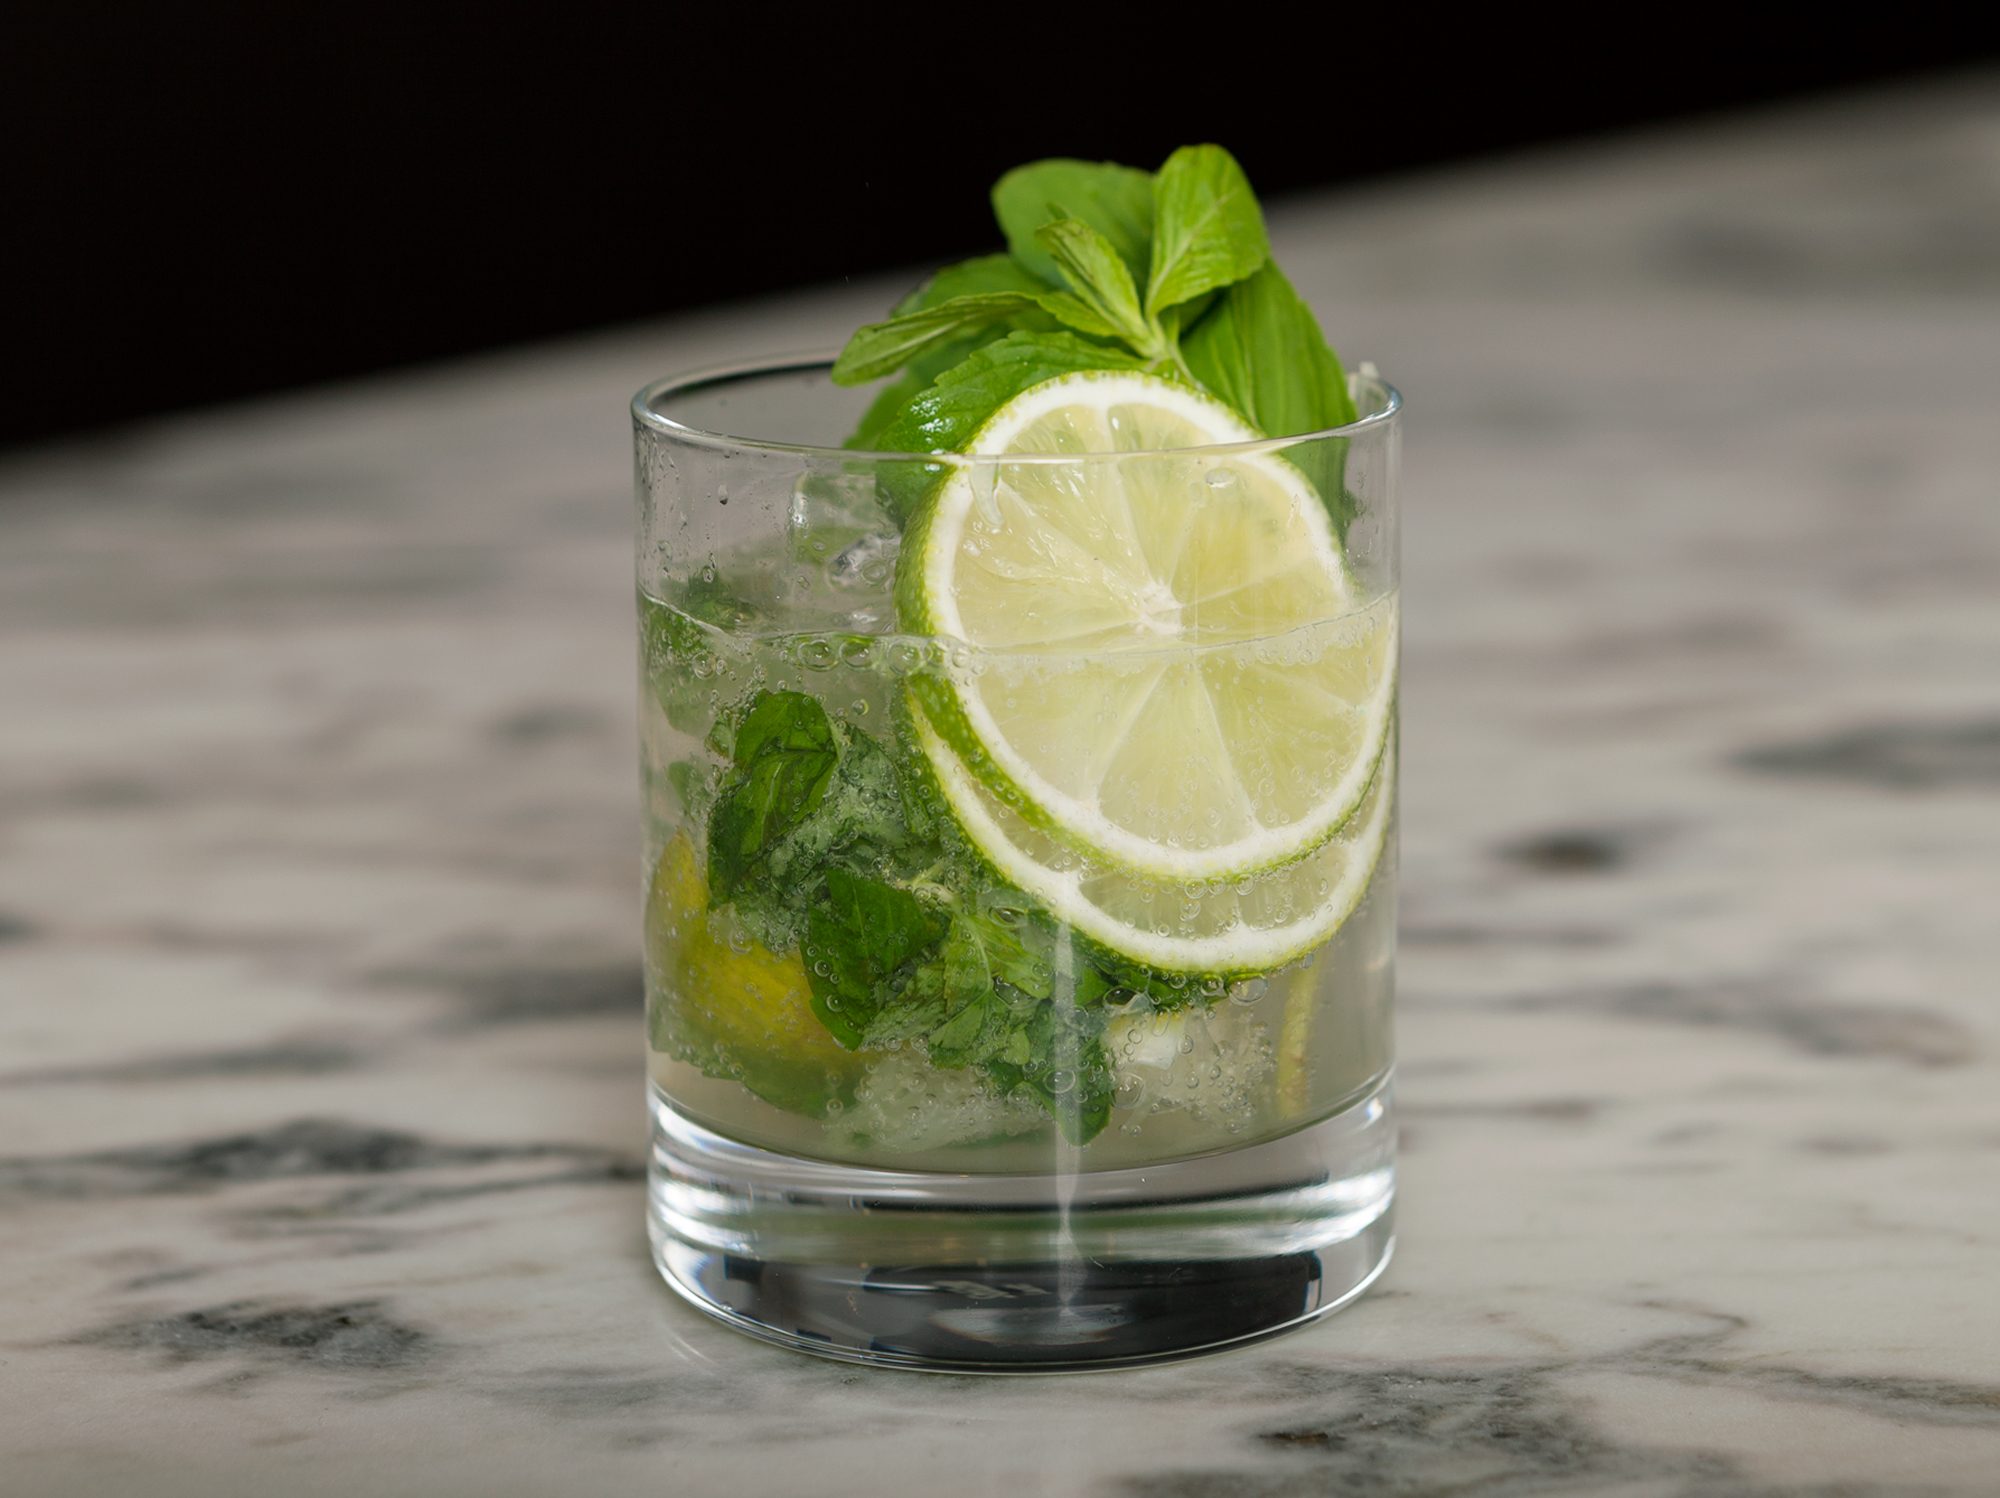 Sake Mojito - 60ml Tōji SakeA handful of Mint leavesHalf a lime, cubed1 tsp SugarSoda waterIceMuddle lime and mint together in your glass.Add 60ml of Tōji Sake and 1 teaspoon of sugar.Fill your glass with ice, stir and top with soda waterGarnish -- 1 mint sprig and two slices of limeEnjoy, Kanpai!